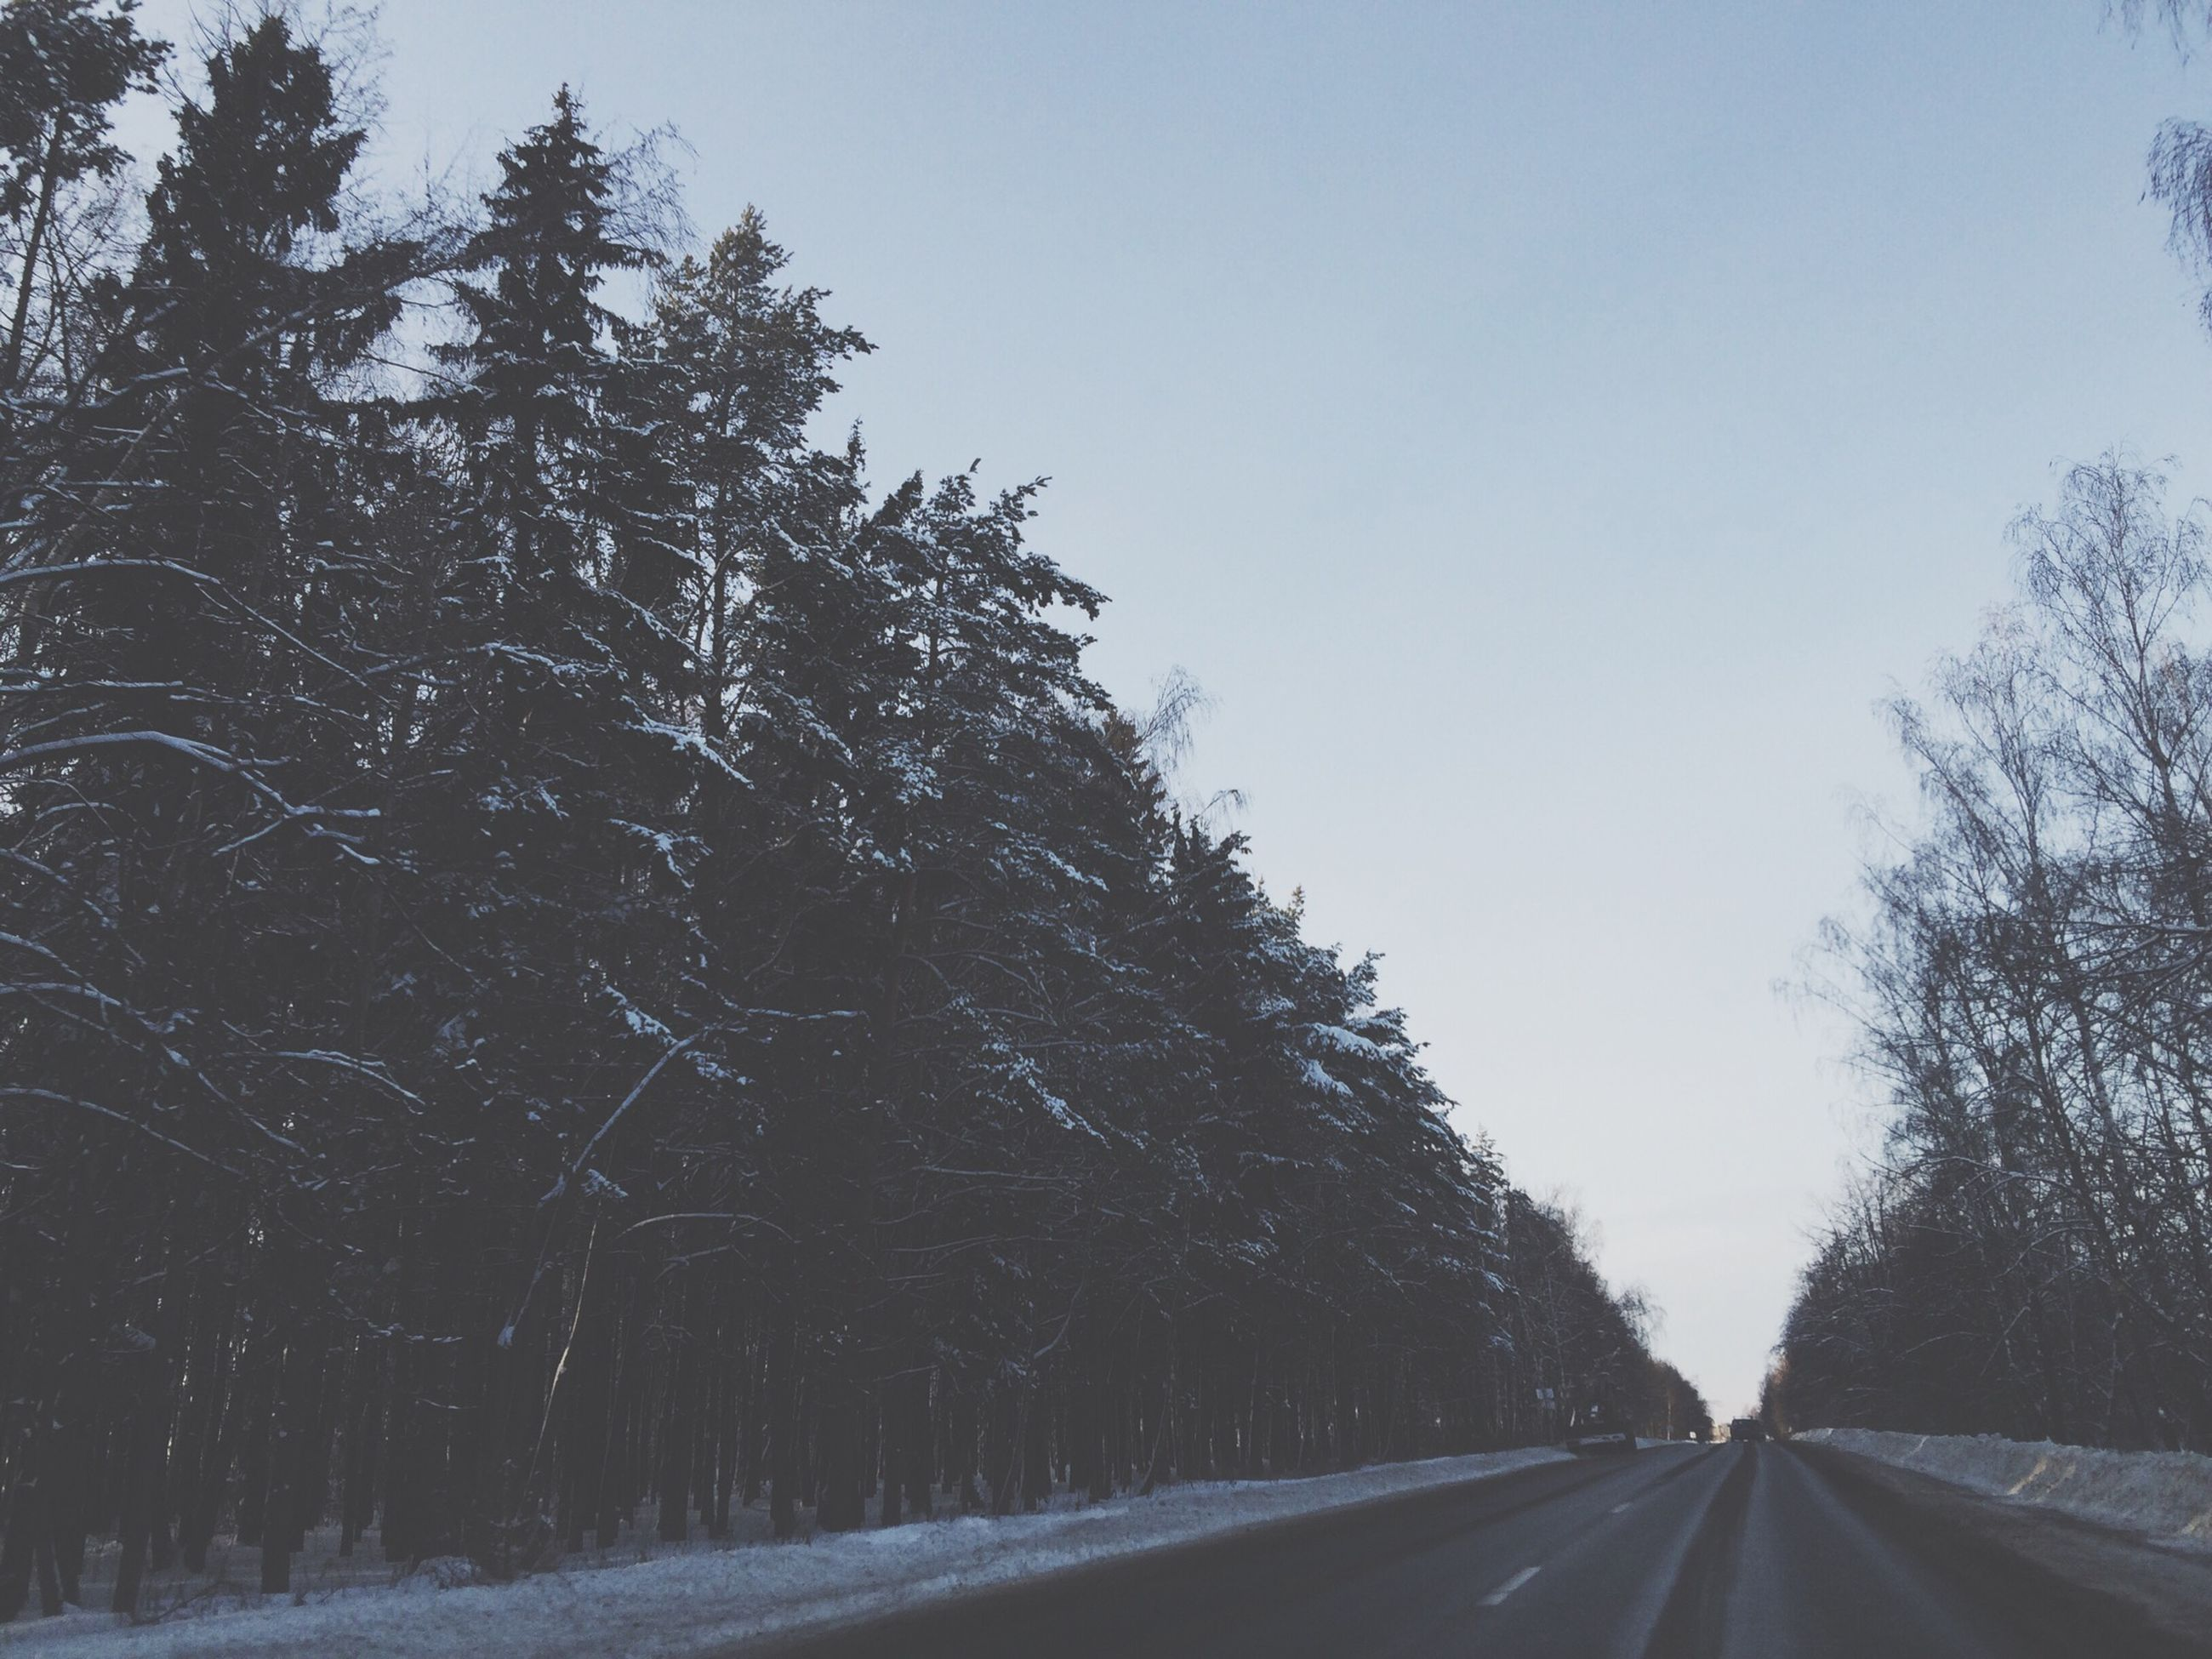 the way forward, tree, road, transportation, diminishing perspective, clear sky, vanishing point, empty road, sky, road marking, nature, tranquility, country road, tranquil scene, street, winter, copy space, snow, outdoors, long